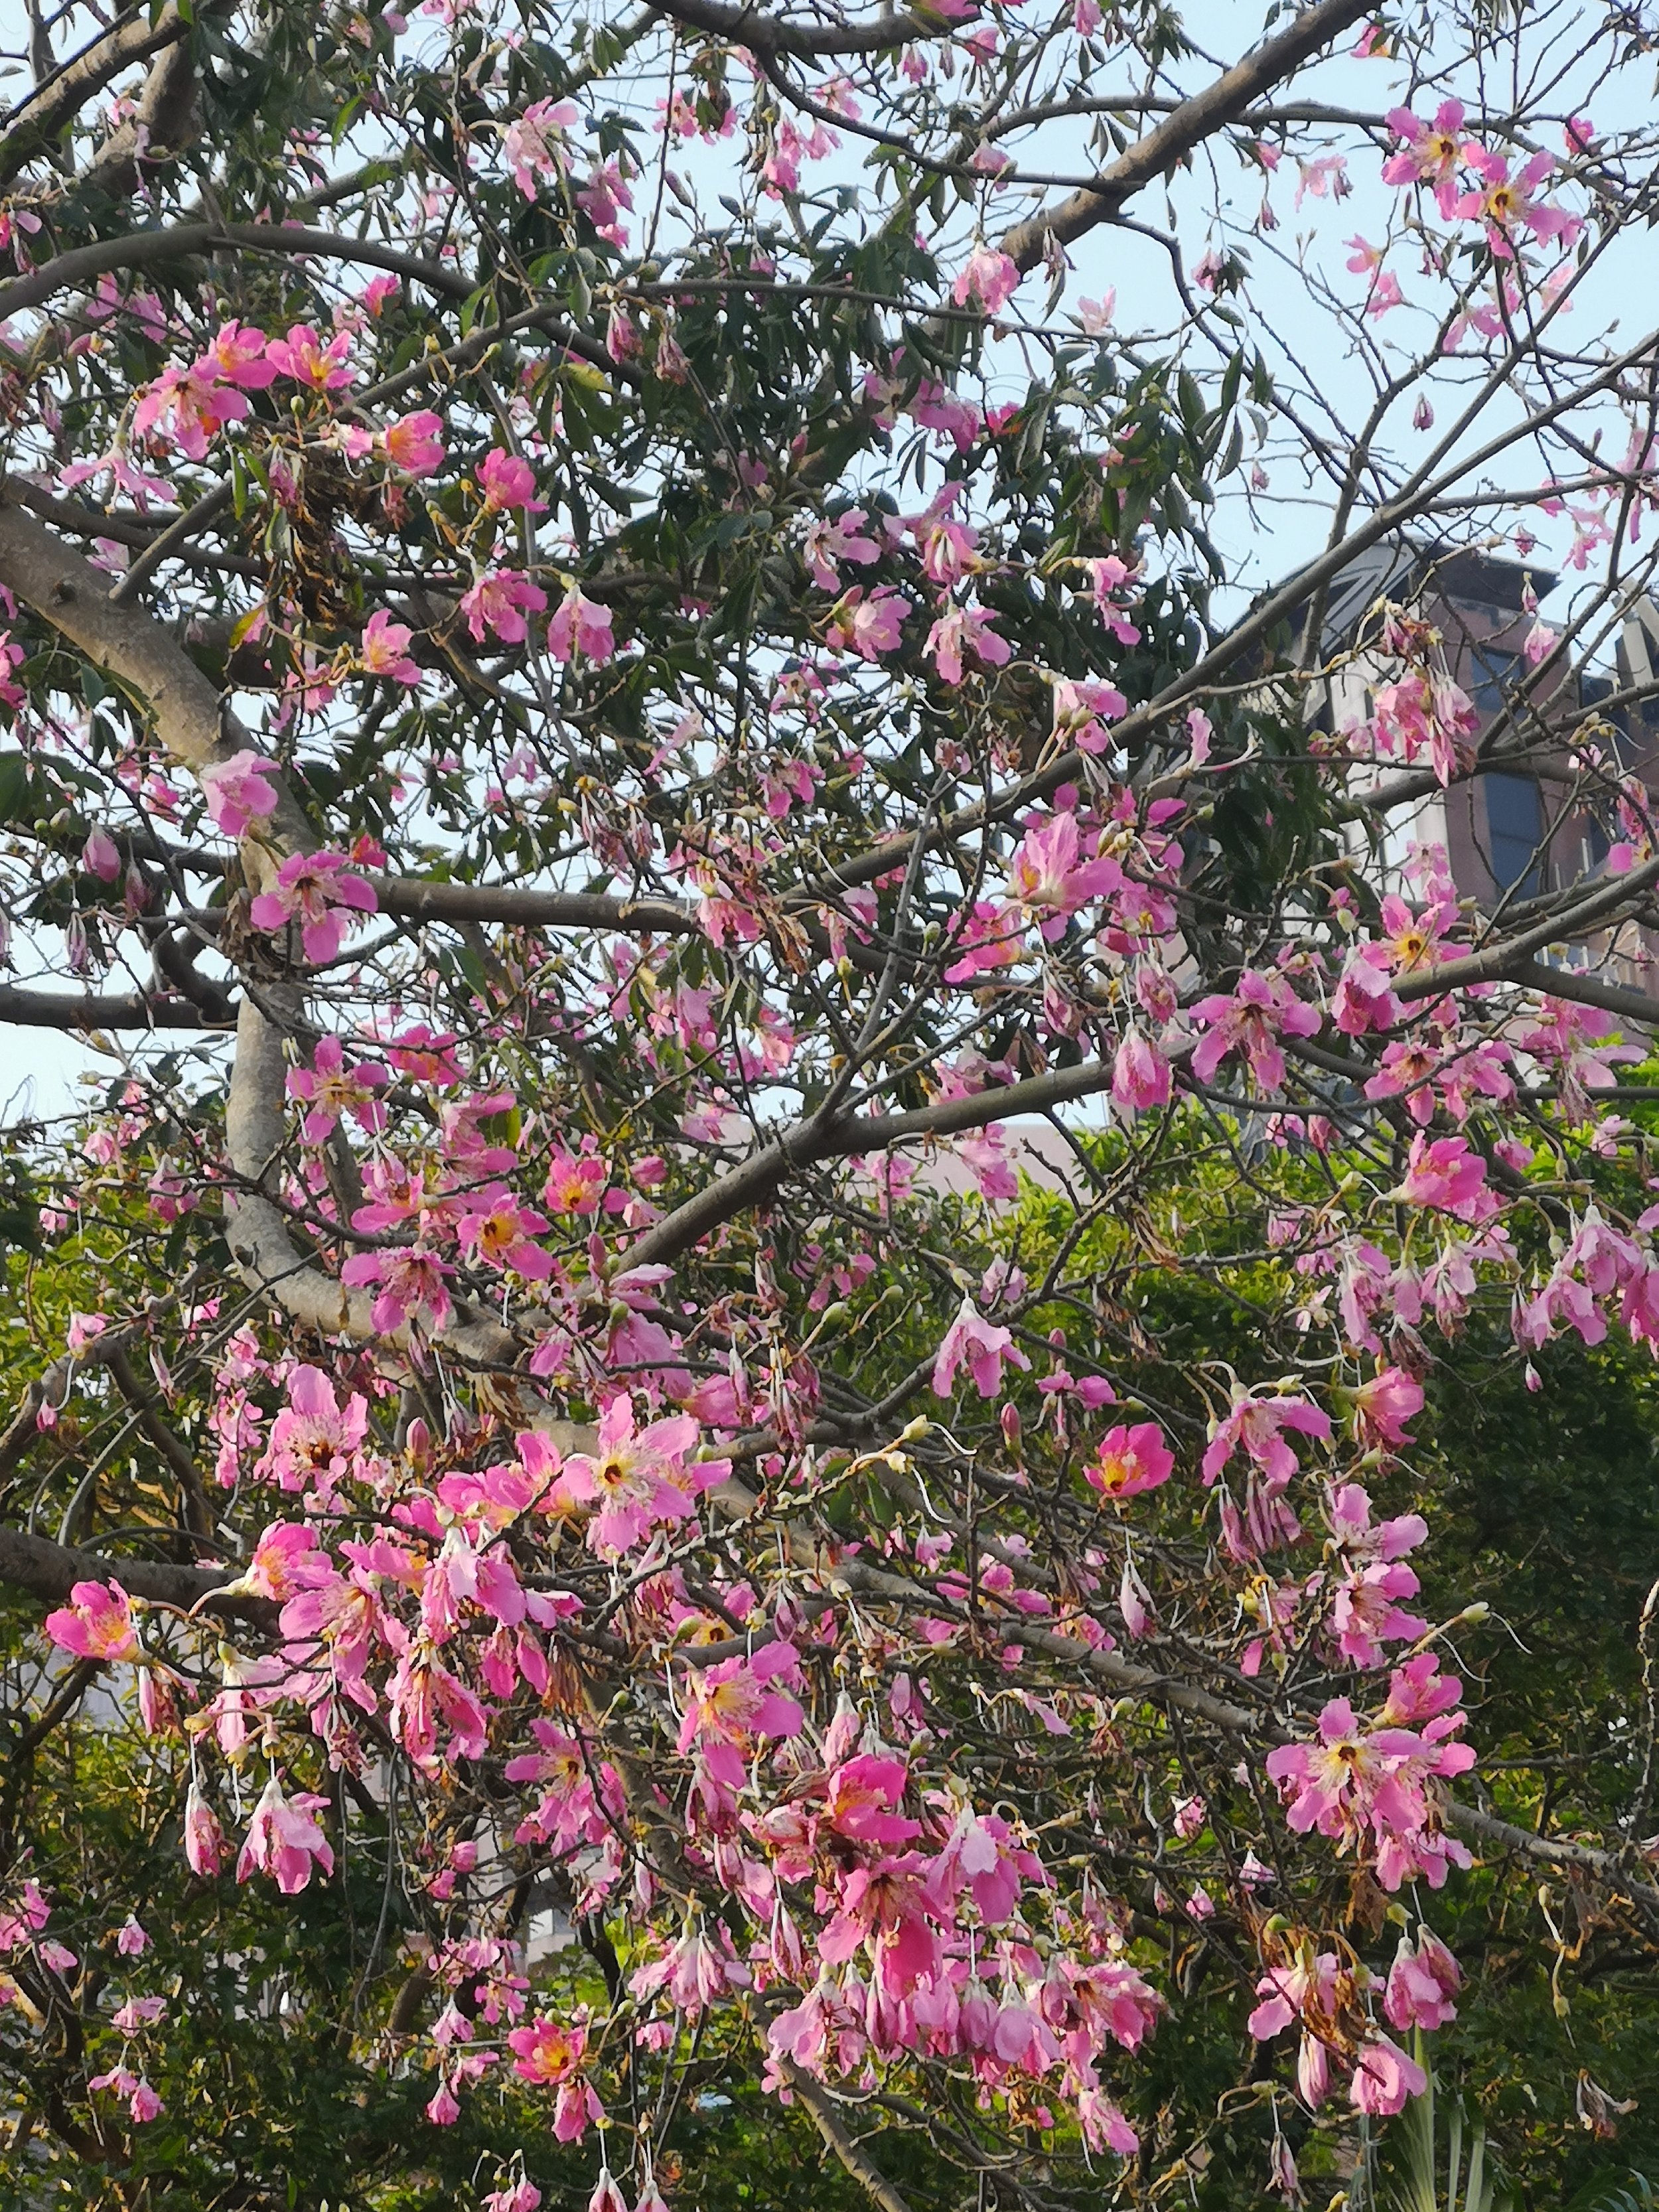 The Bauhinia flower is the Hong Kong, city flower. It is also symbolic on Hong Kong's map.